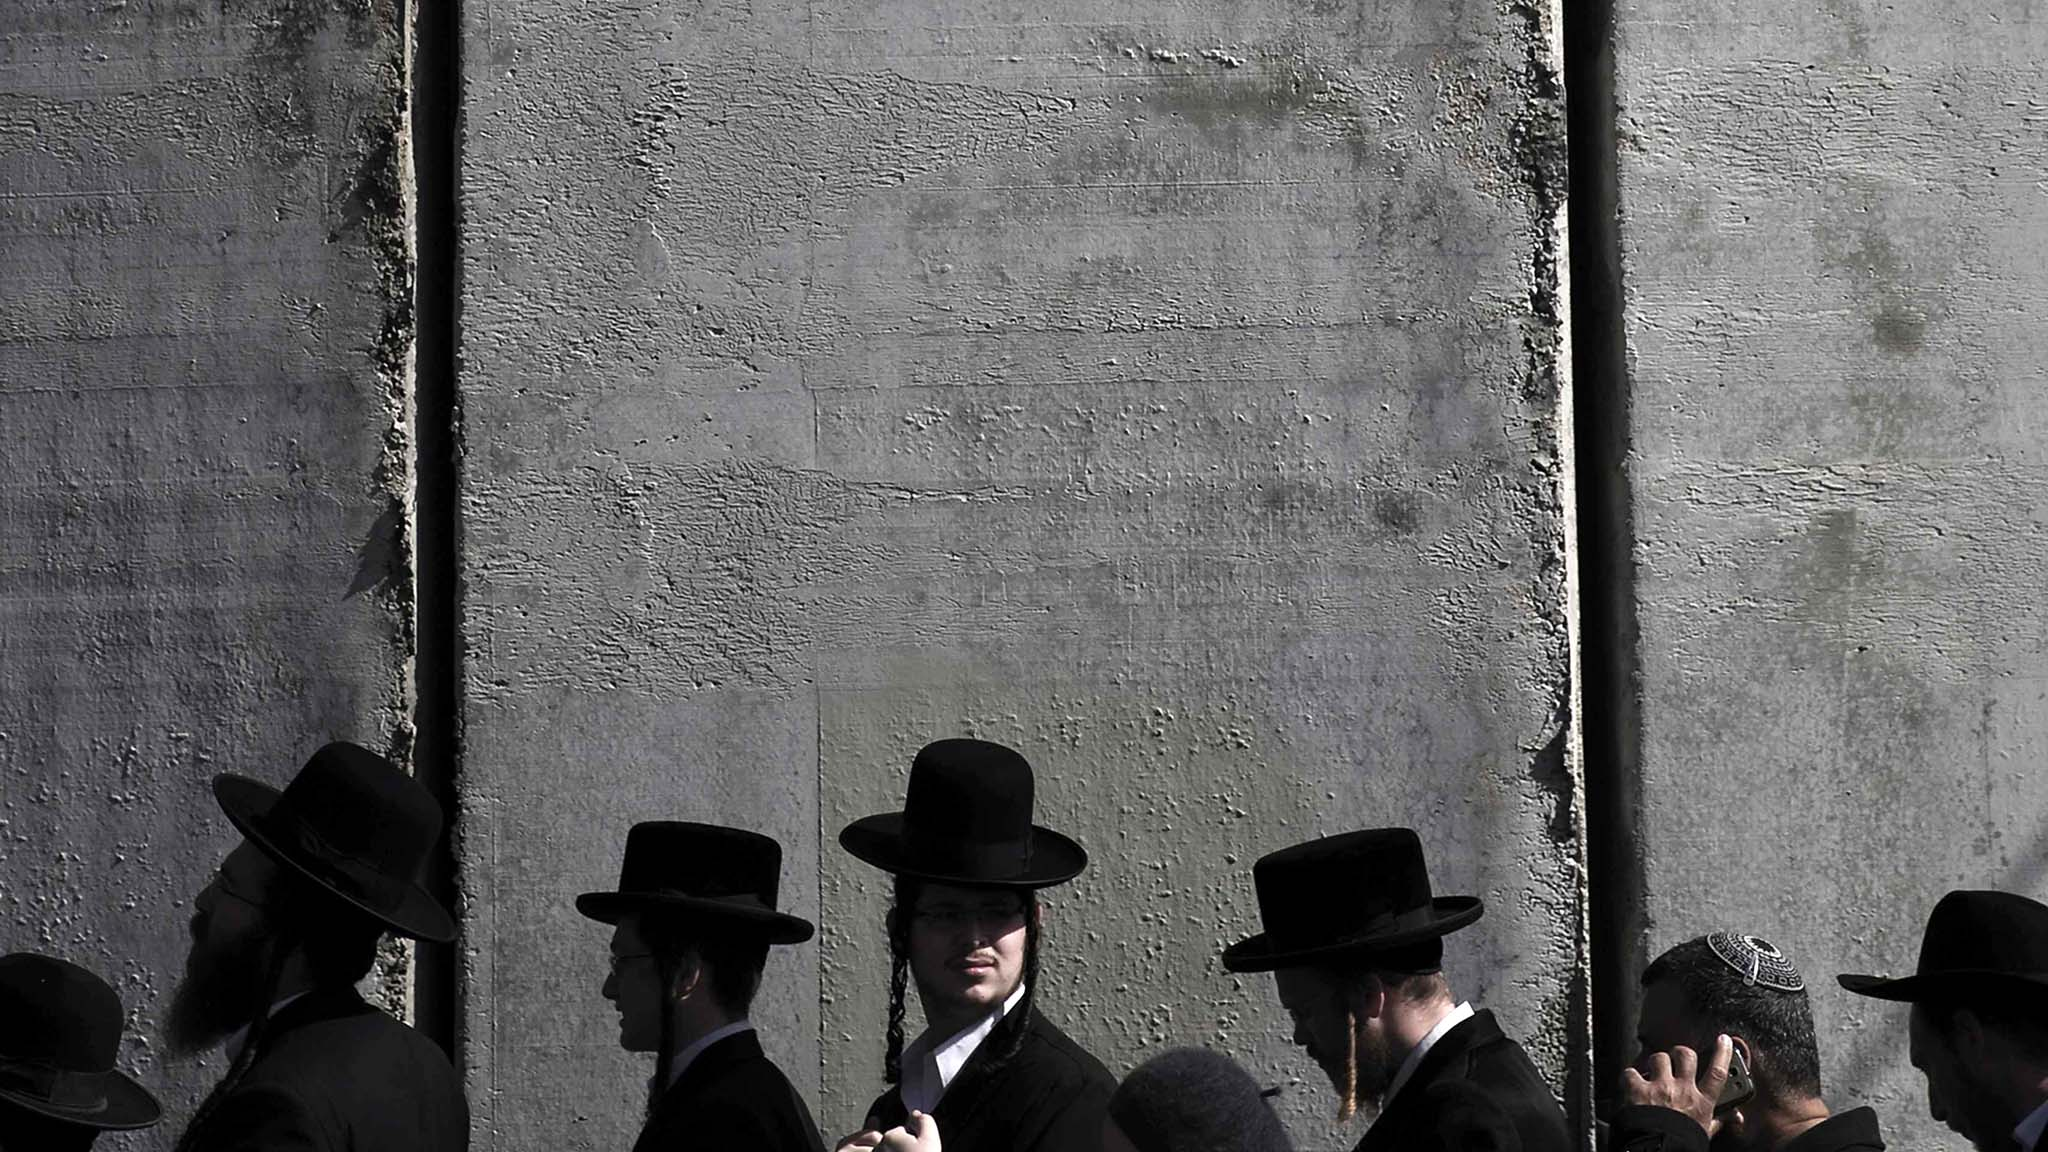 Ultra-Orthodox Jewish men walk near the controversial Israeli barrier outside Rachel's tomb in Bethlehem